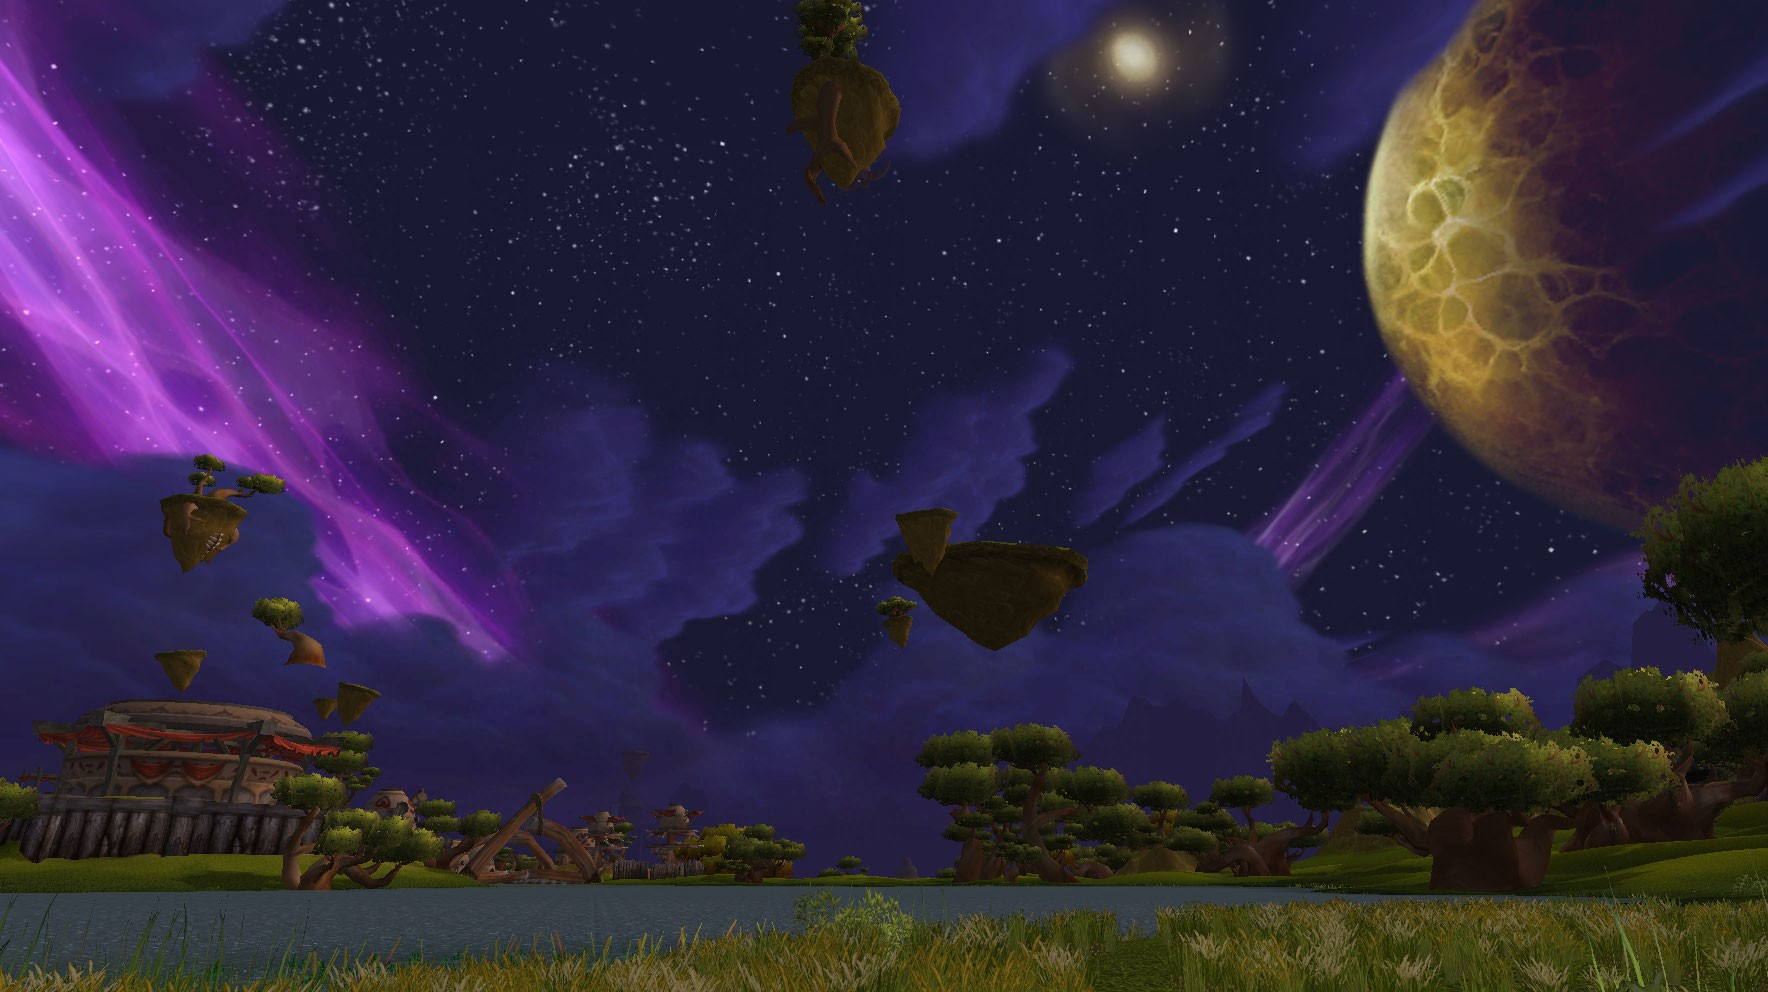 World of Warcraft - Nagrand at Night